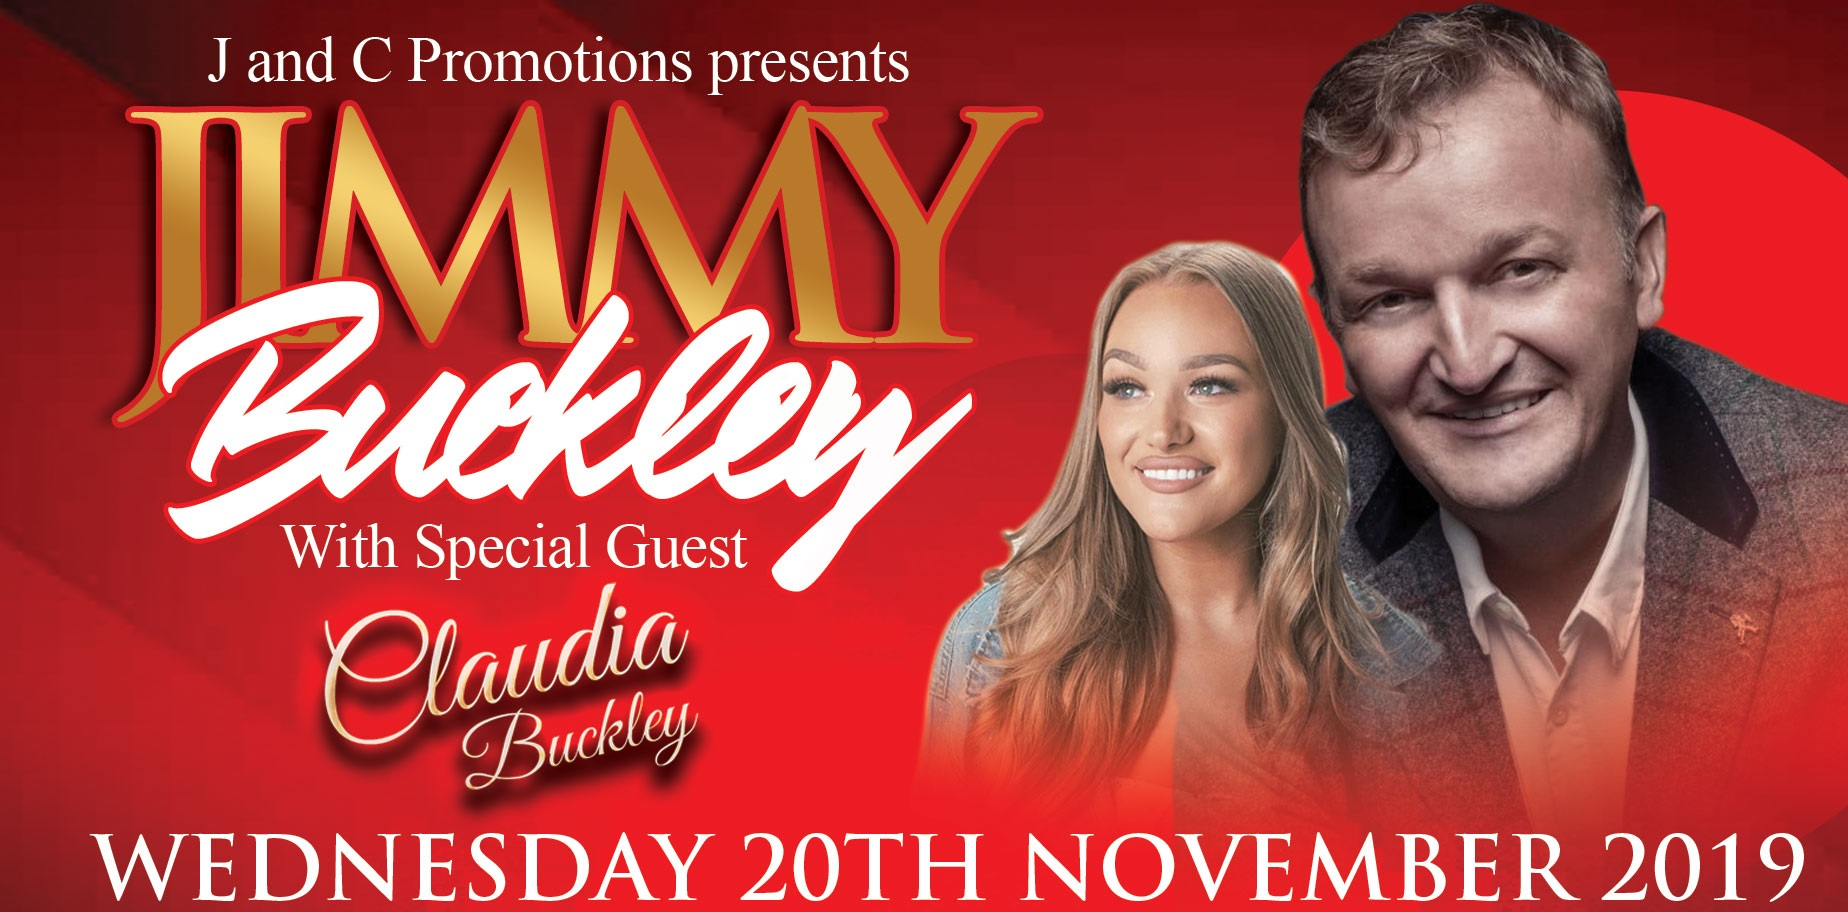 Jimmy Buckleys Country Limited